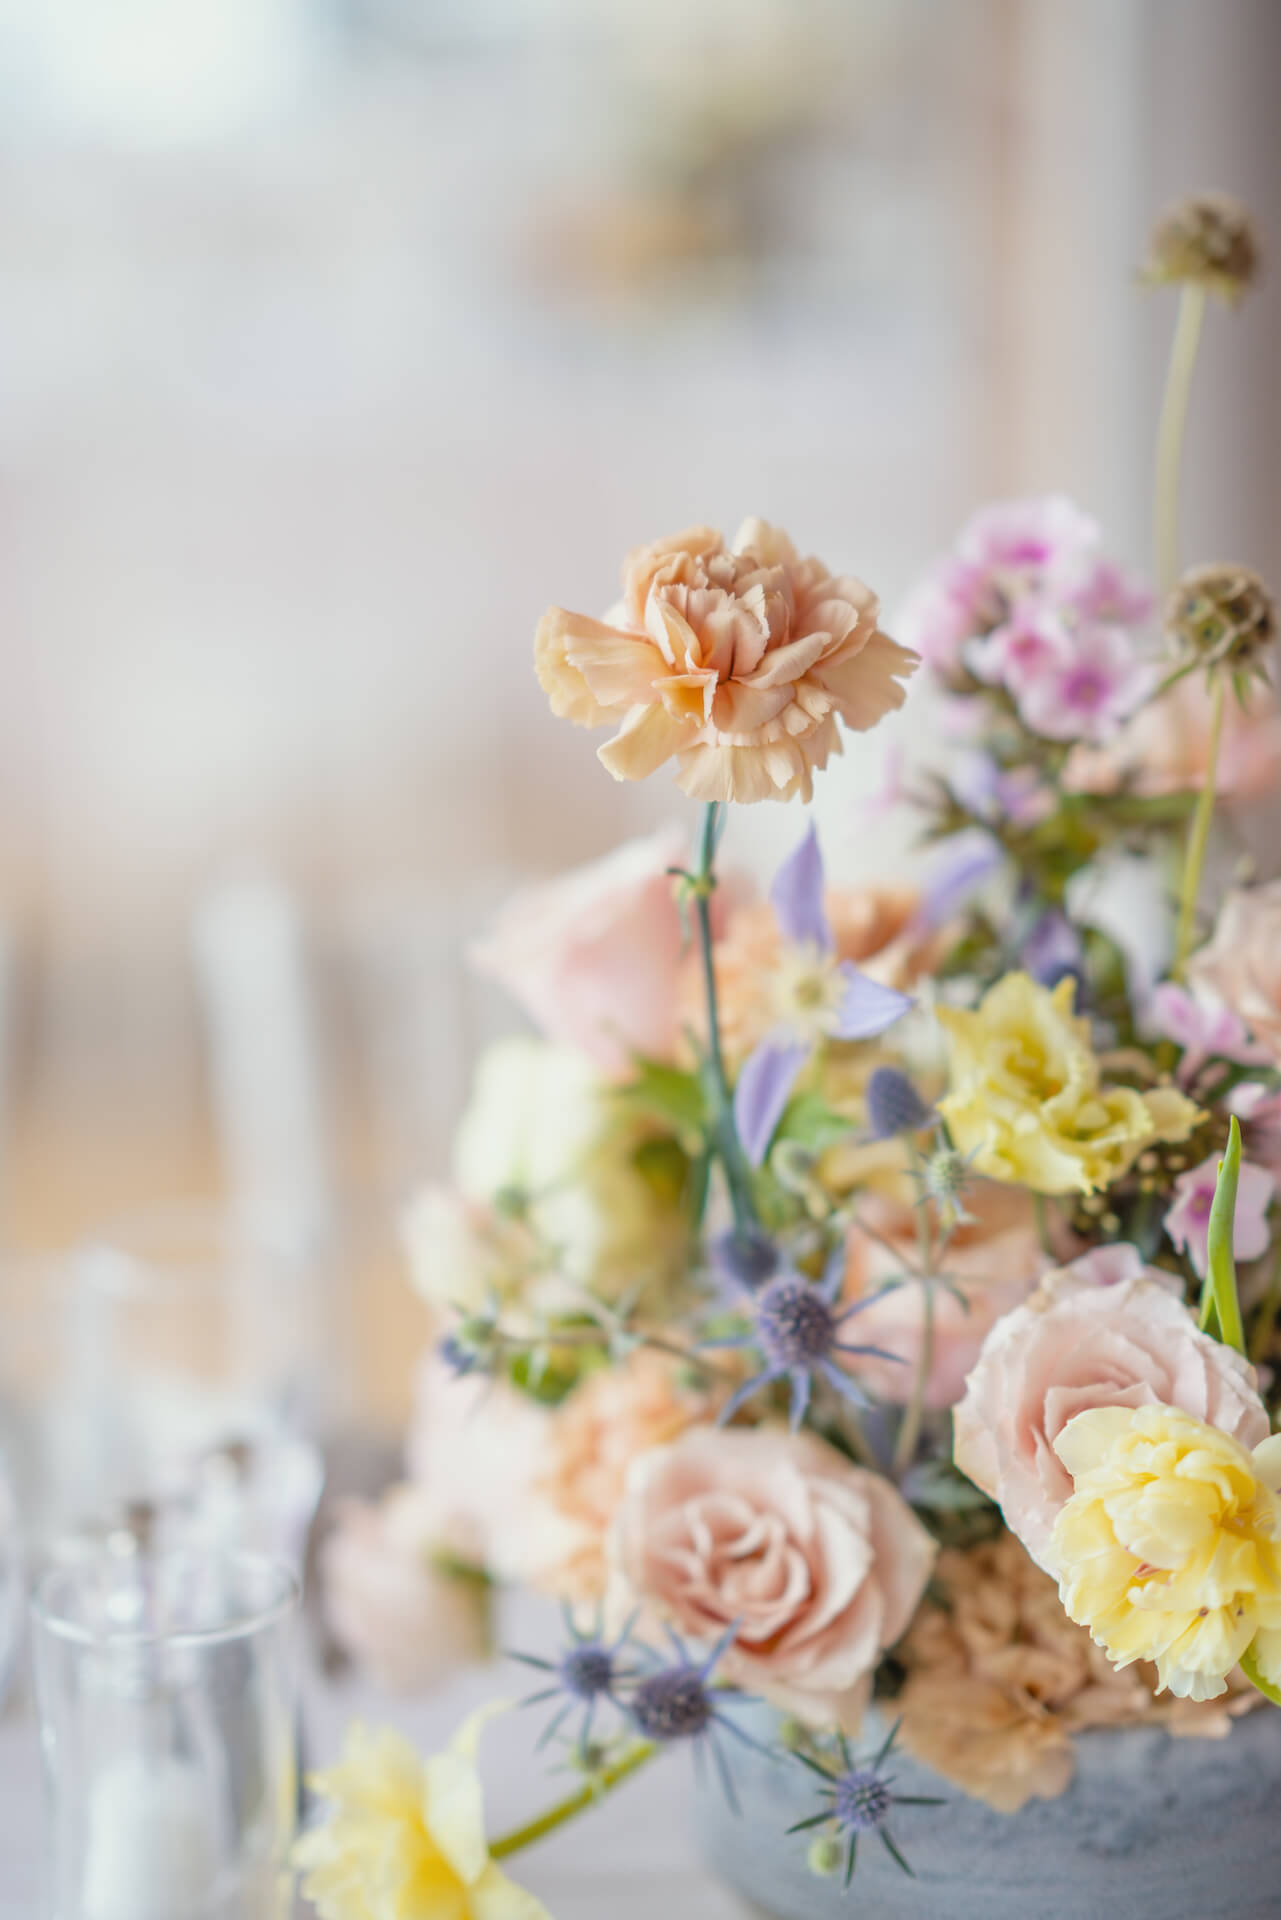 Thames Rowing Club Wedding Flowers Centrepieces